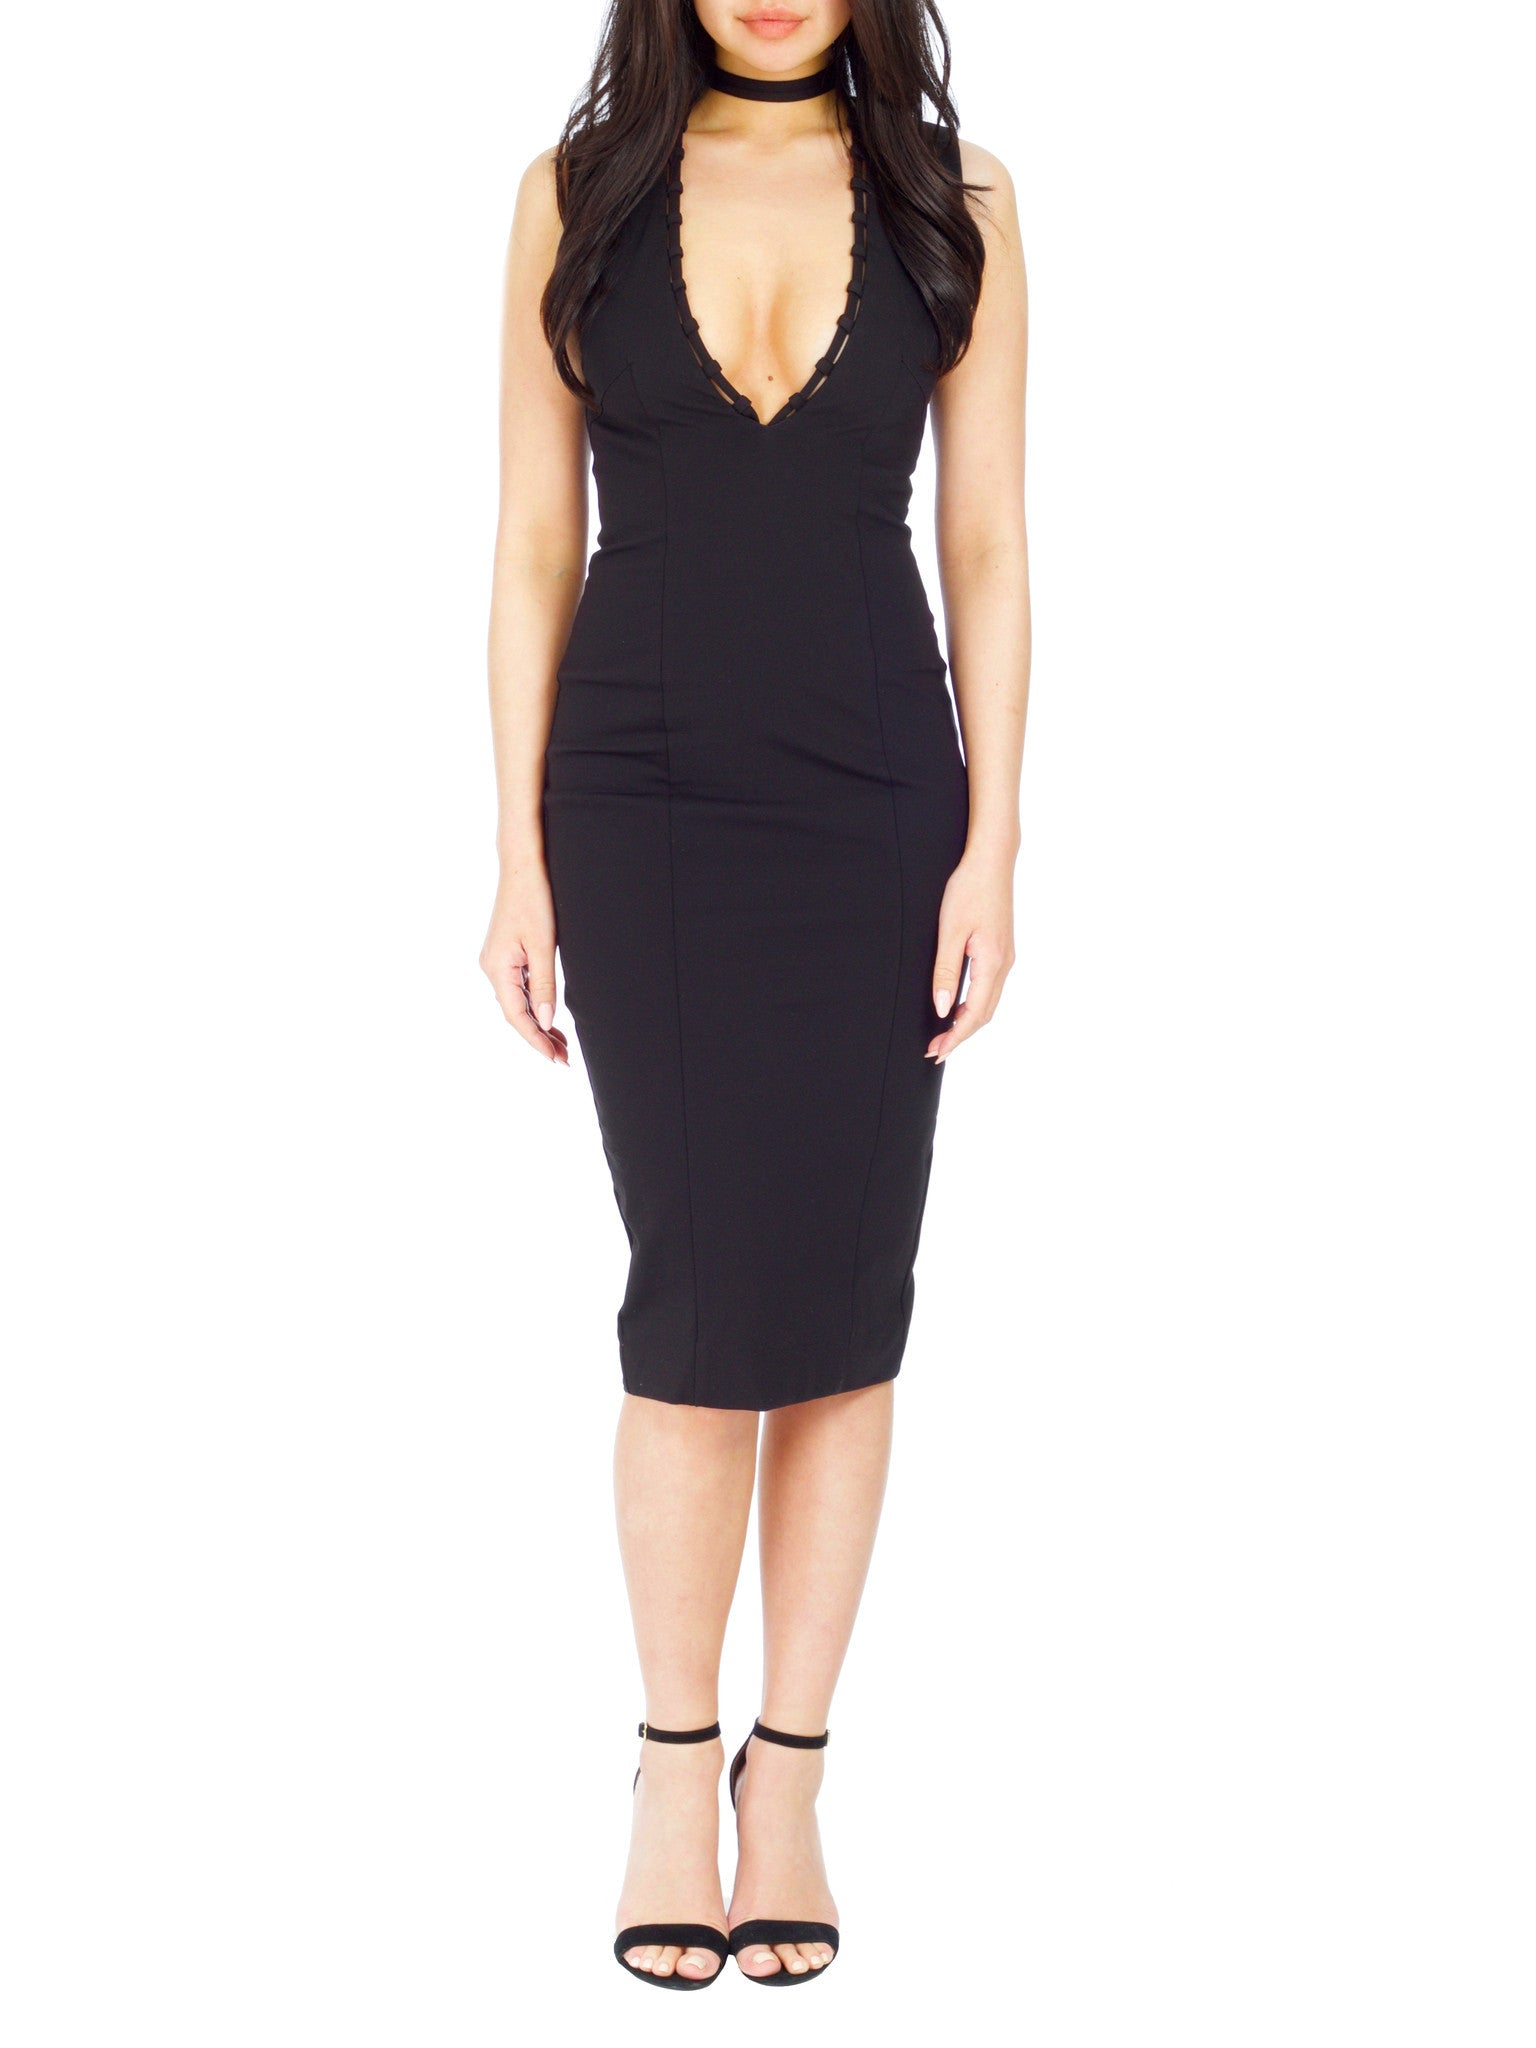 Superstition Dress - BLACK - PRADEGAL